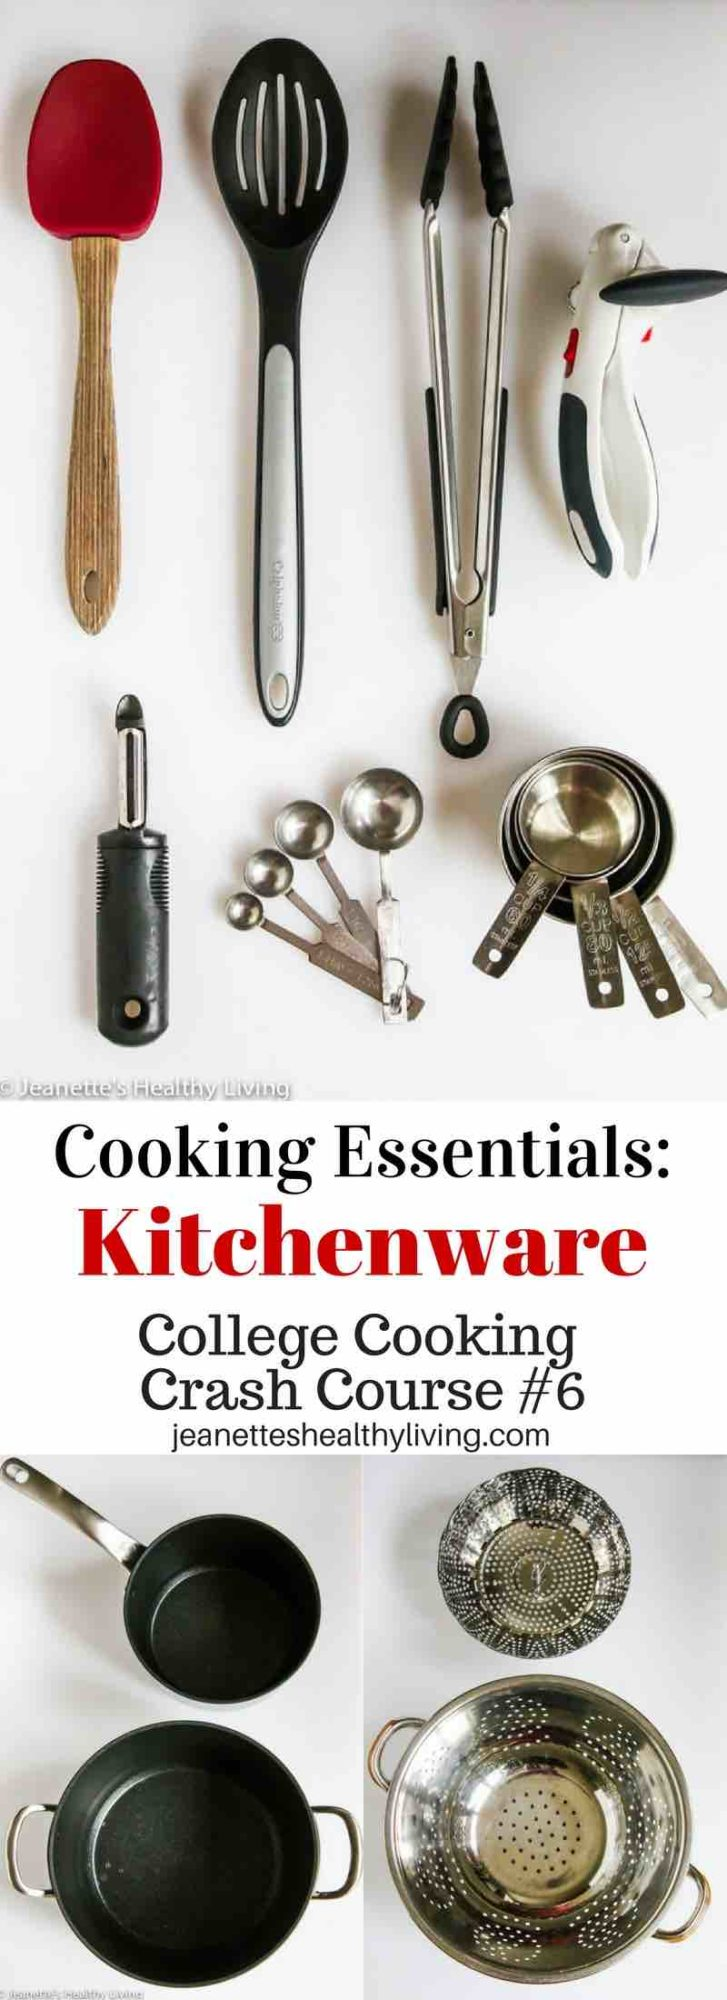 College Cooking Crash Course #6 - Cooking essentials kitchenware